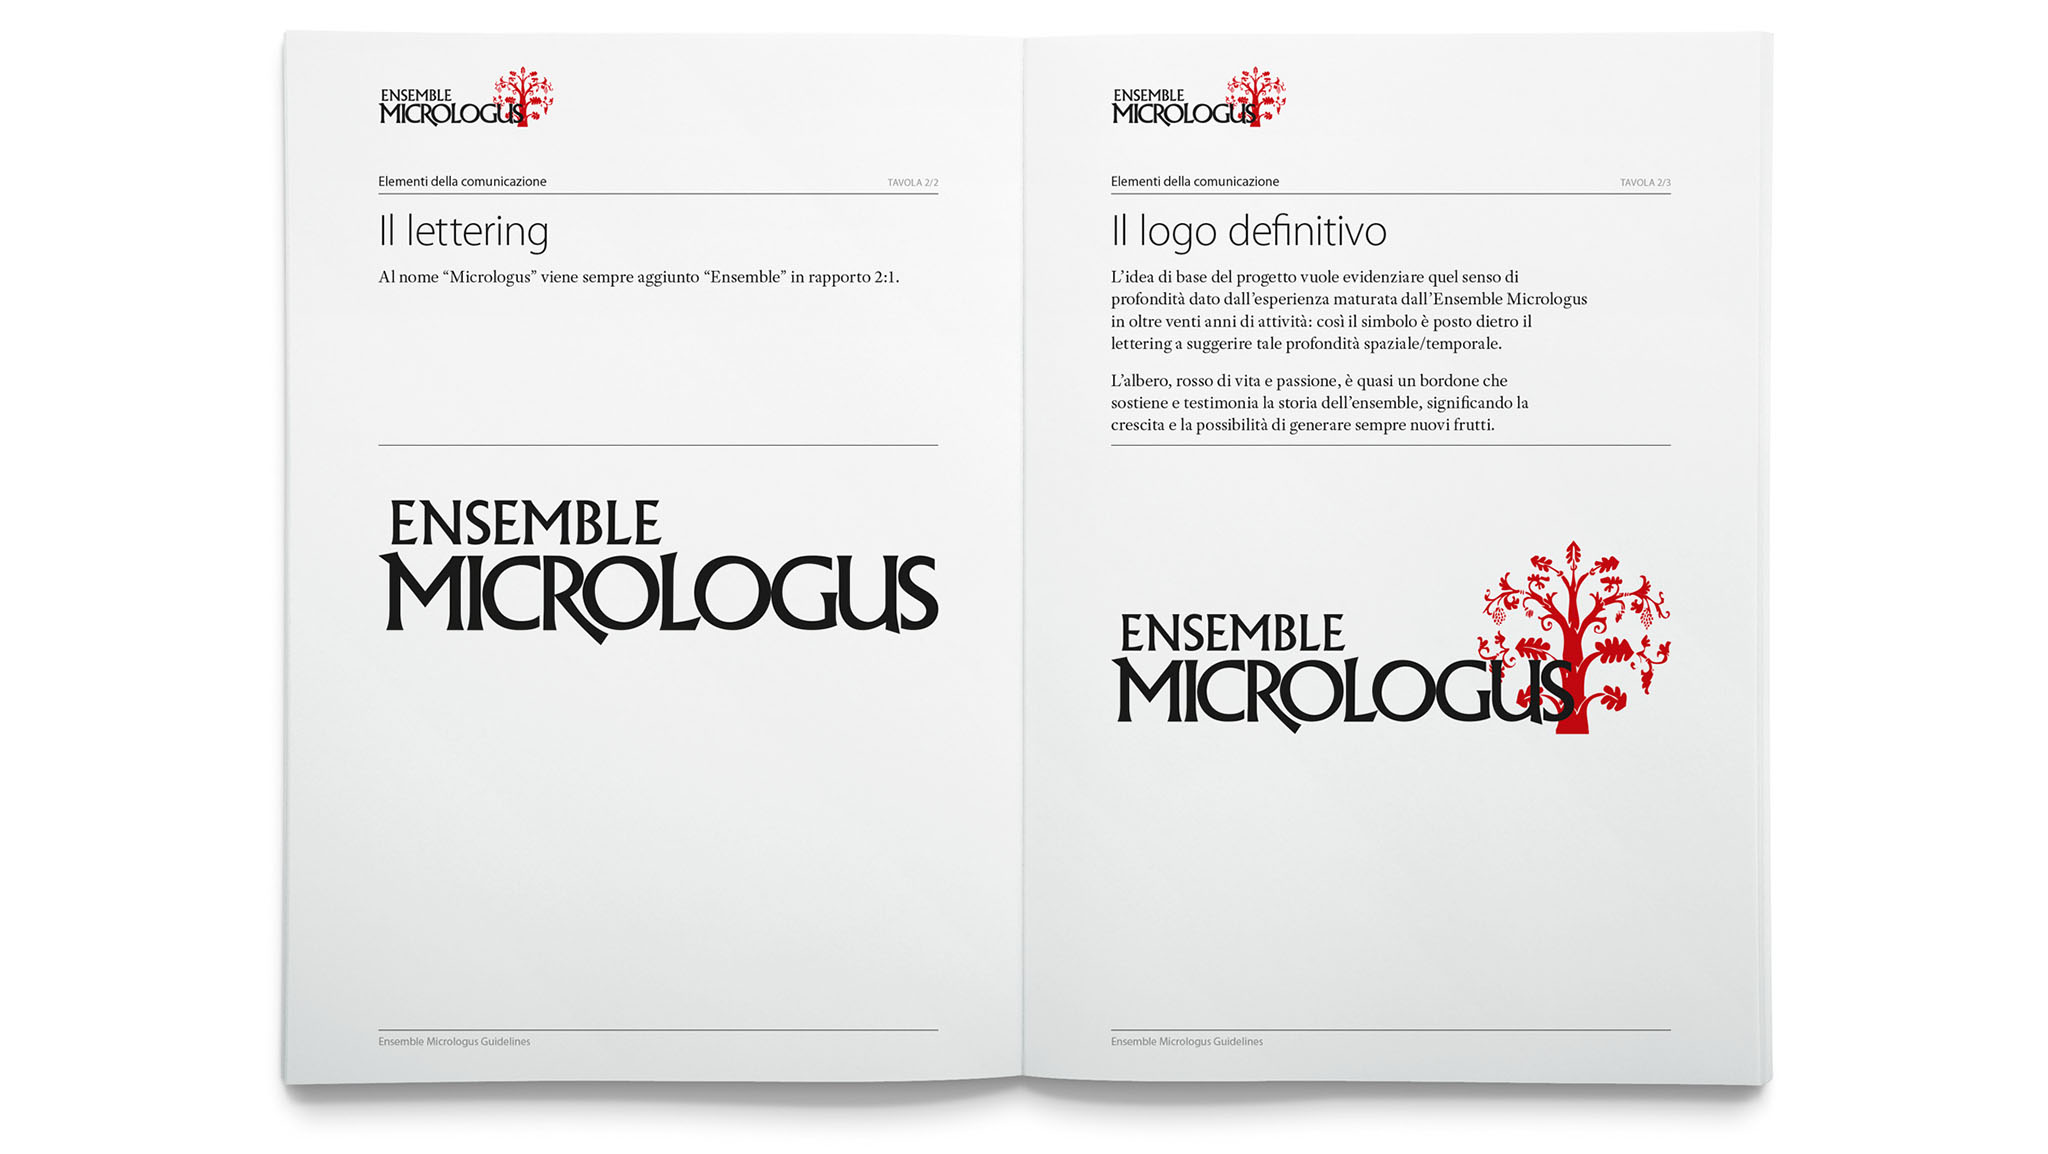 Micrologus_Identity_10